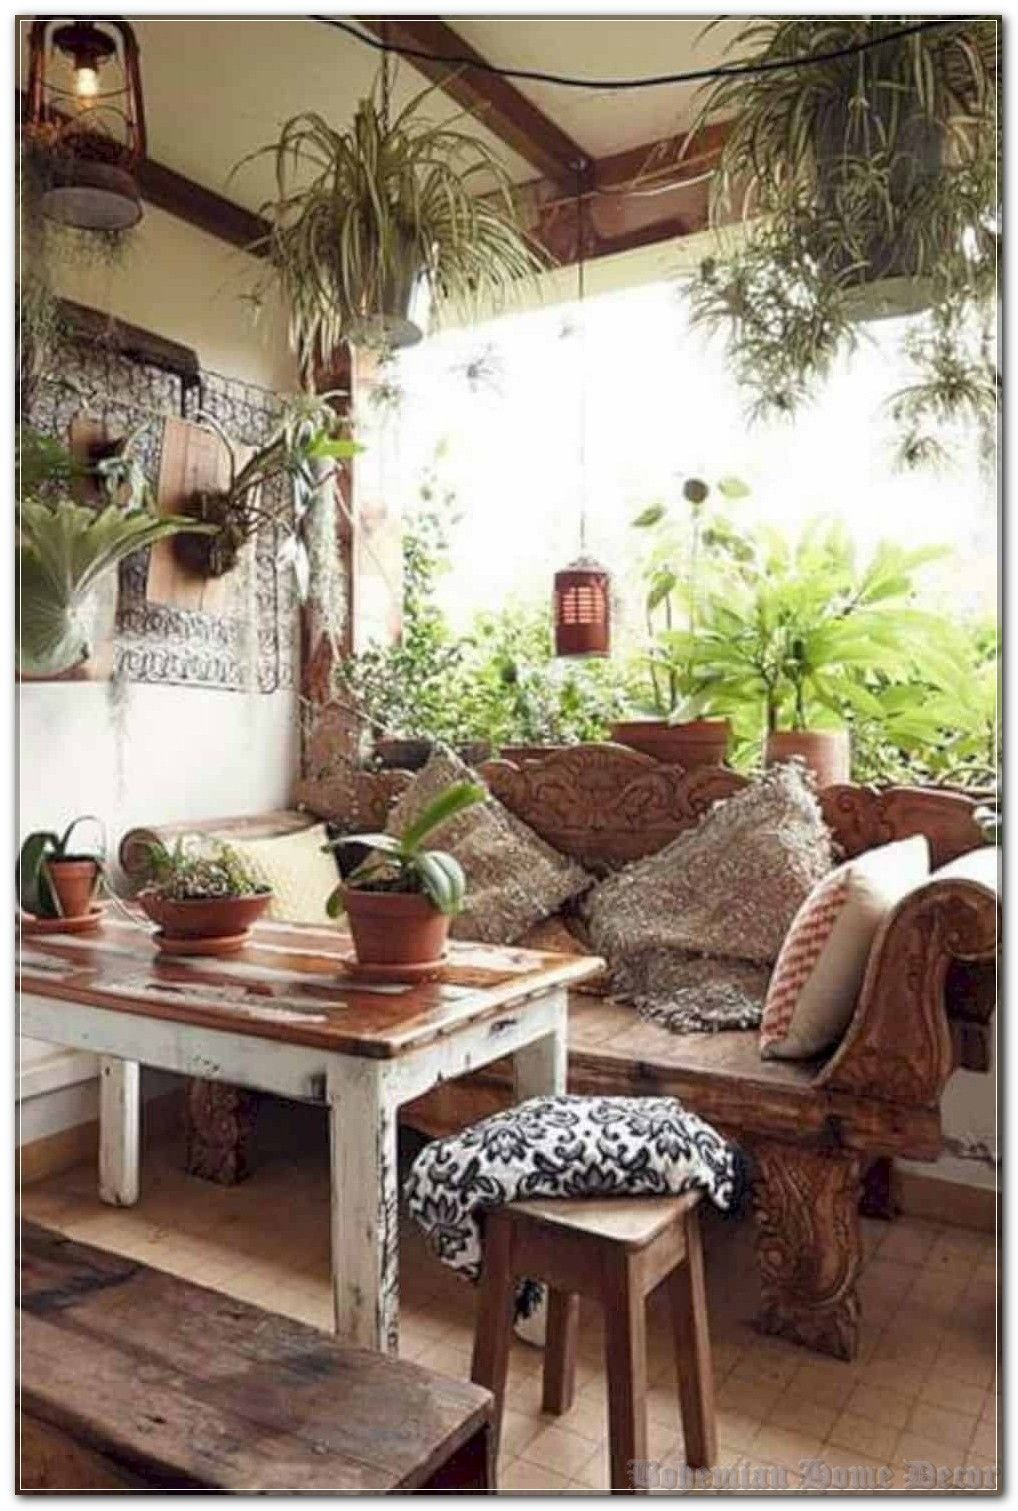 Bohemian Home Decor? It's Easy If You Do It Smart